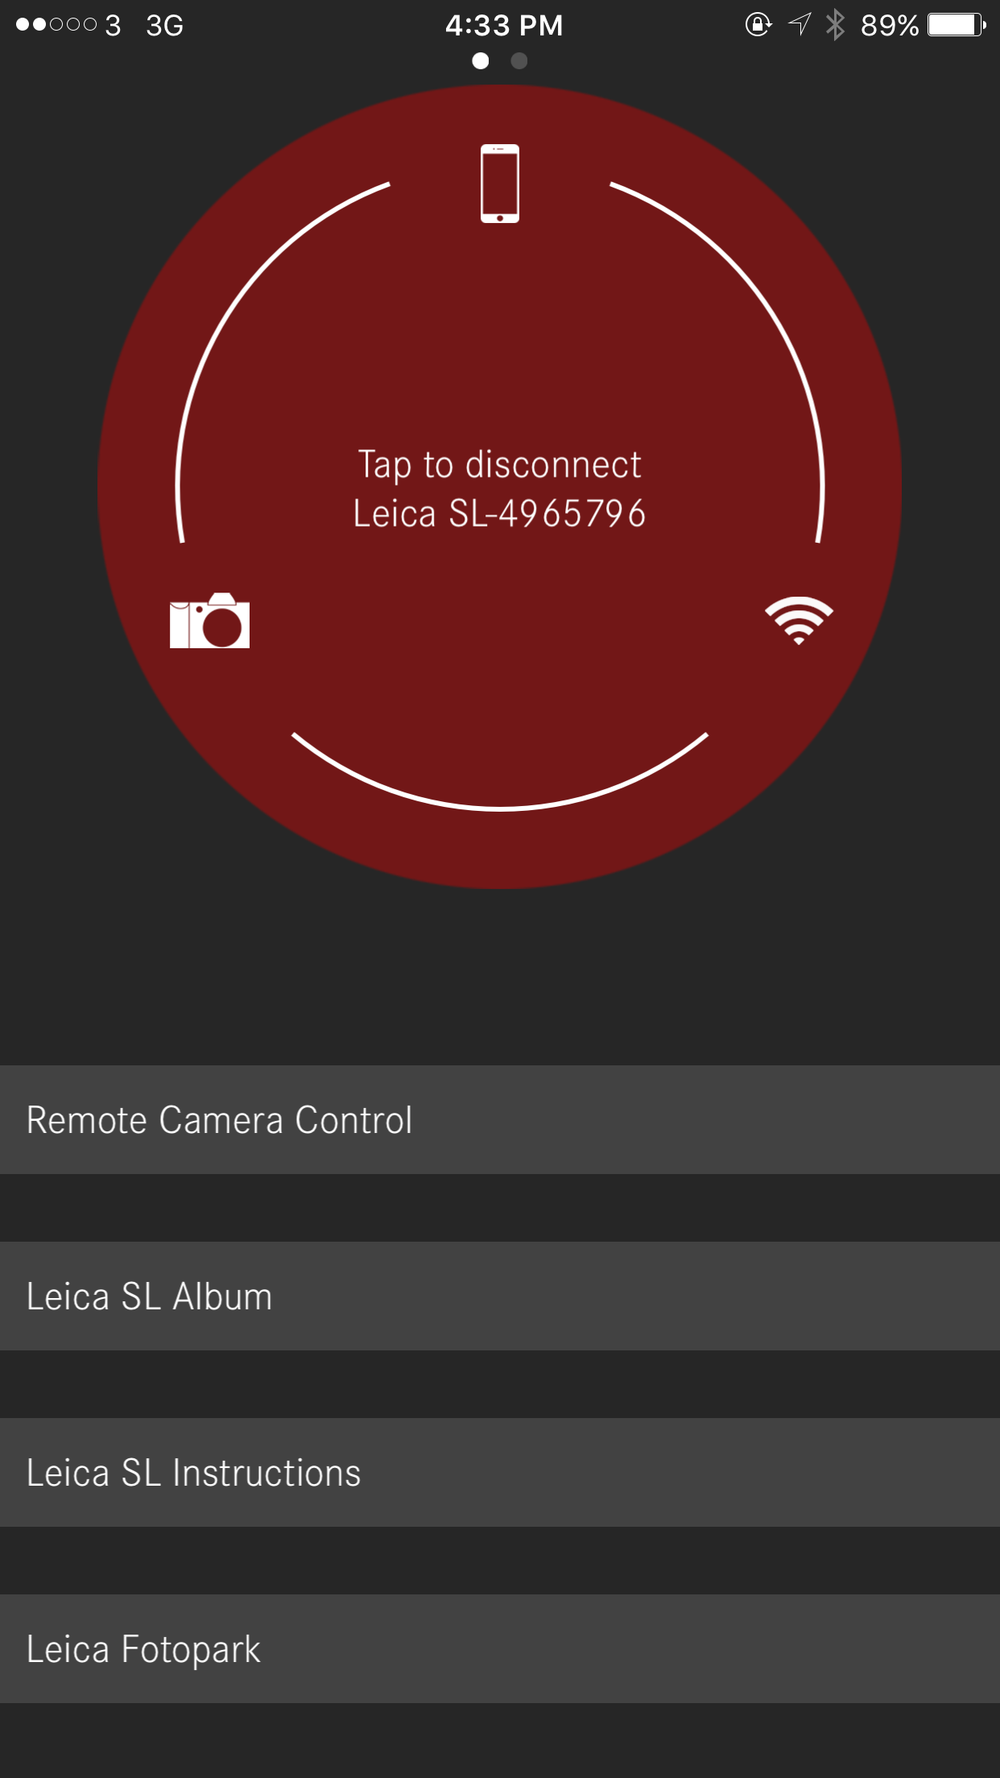 Once connected, you can click the remote camera control button to enable camera operations.